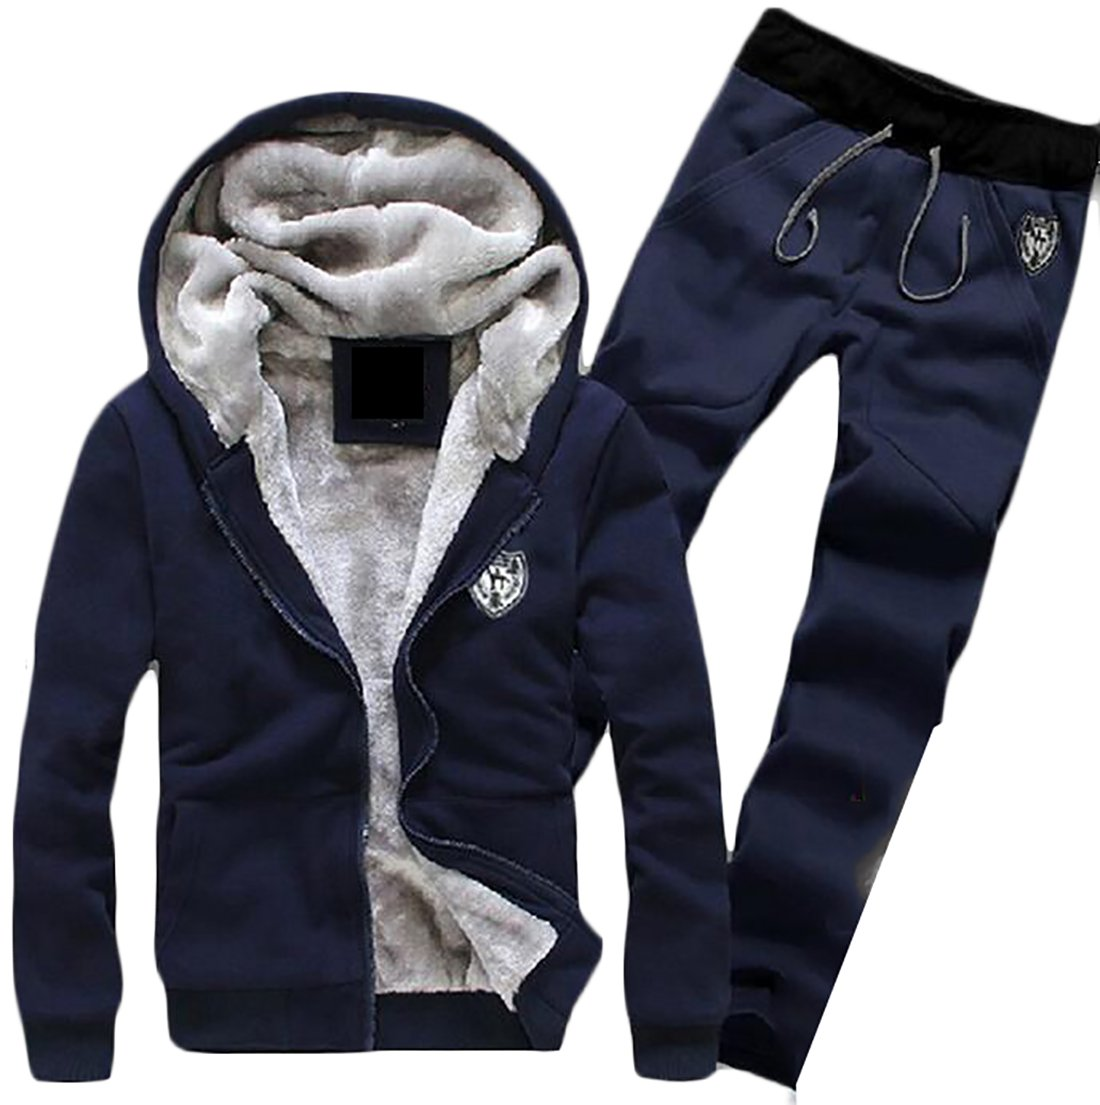 Zantt Mens Two Pieces Fleece Lined Hooded Sweatshirt with Sweatsuit Tracksuit Set